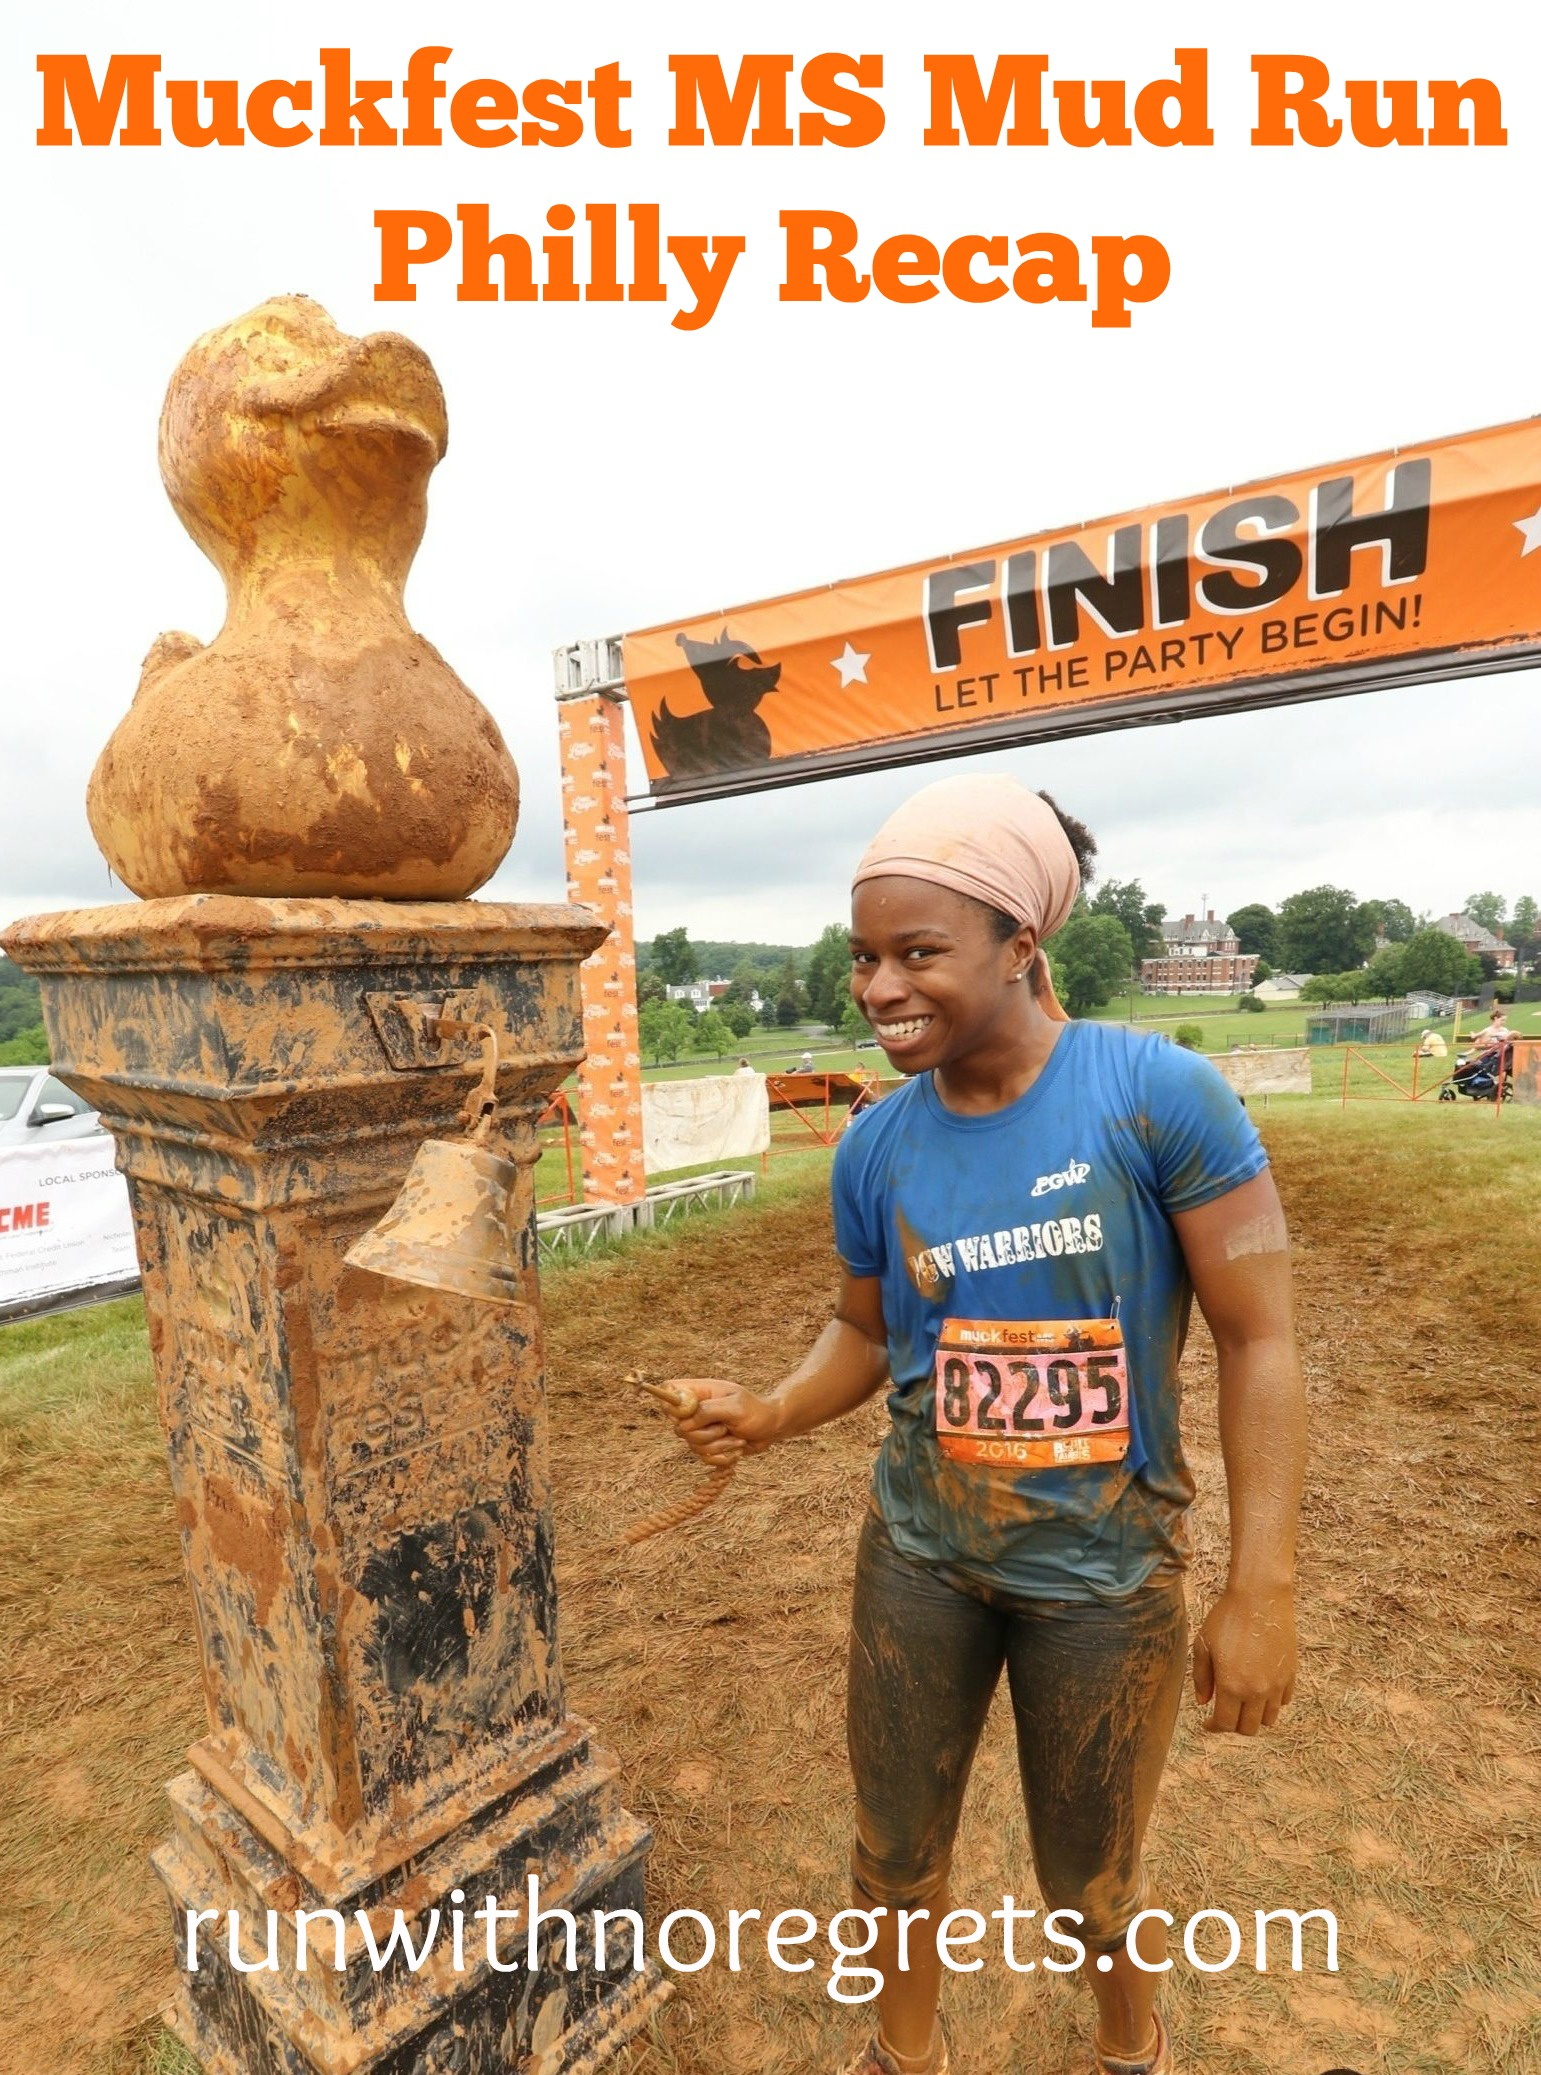 Fun And Simple Pool Noodle Boat Craft For Kids: Muckfest MS Mud Run Philly Recap